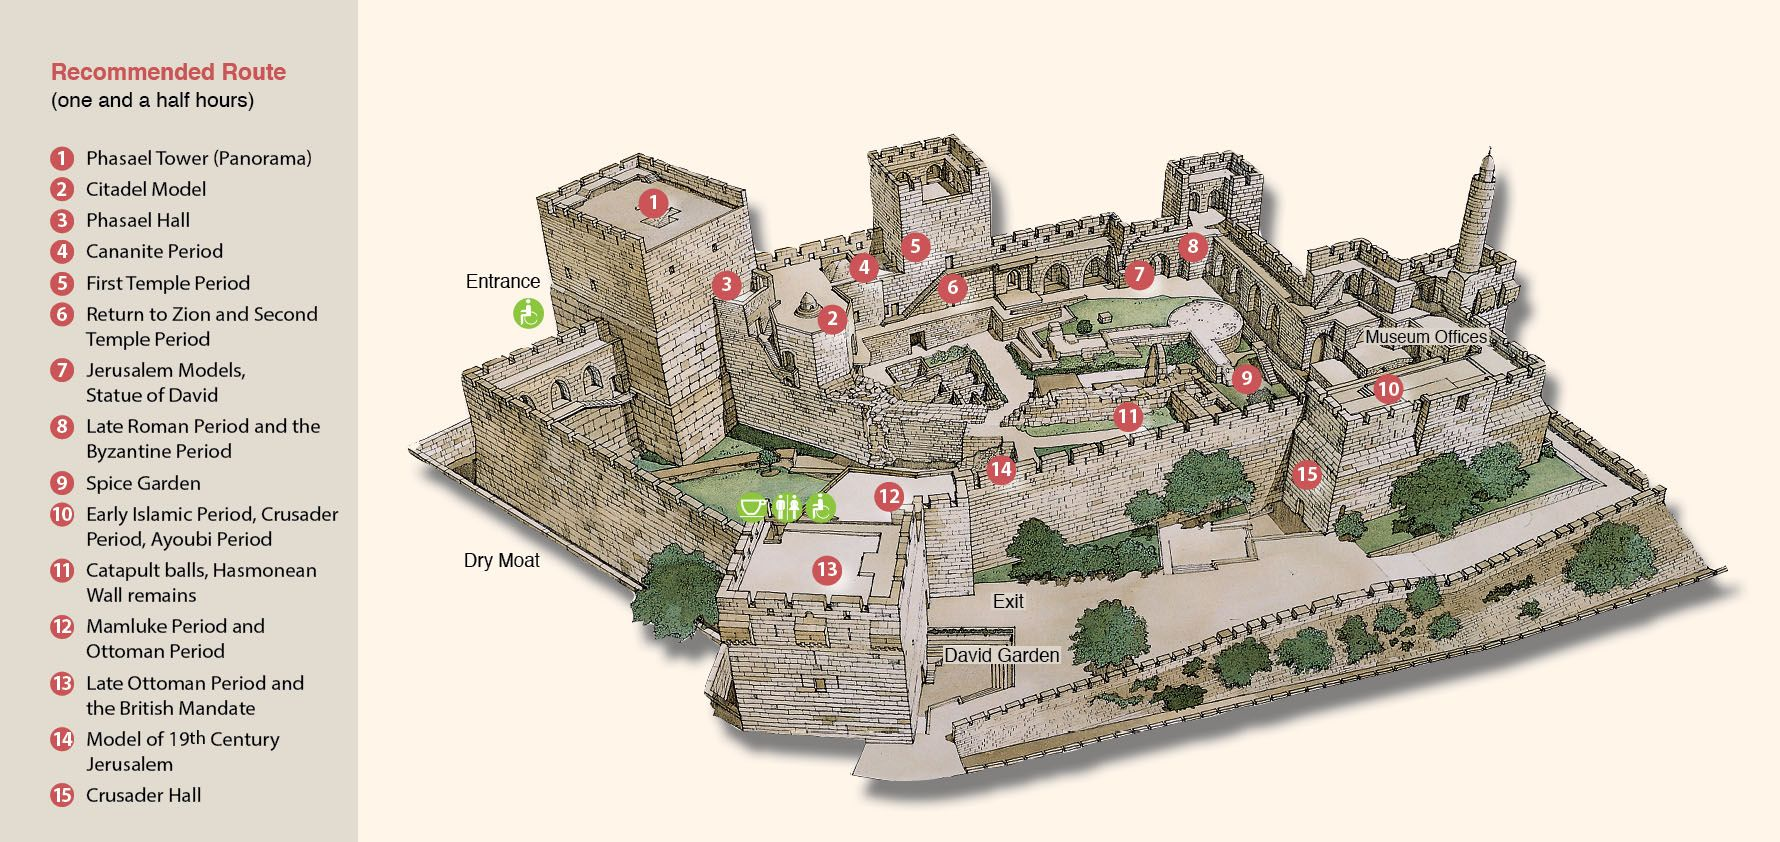 Tower of David Museum - MAP